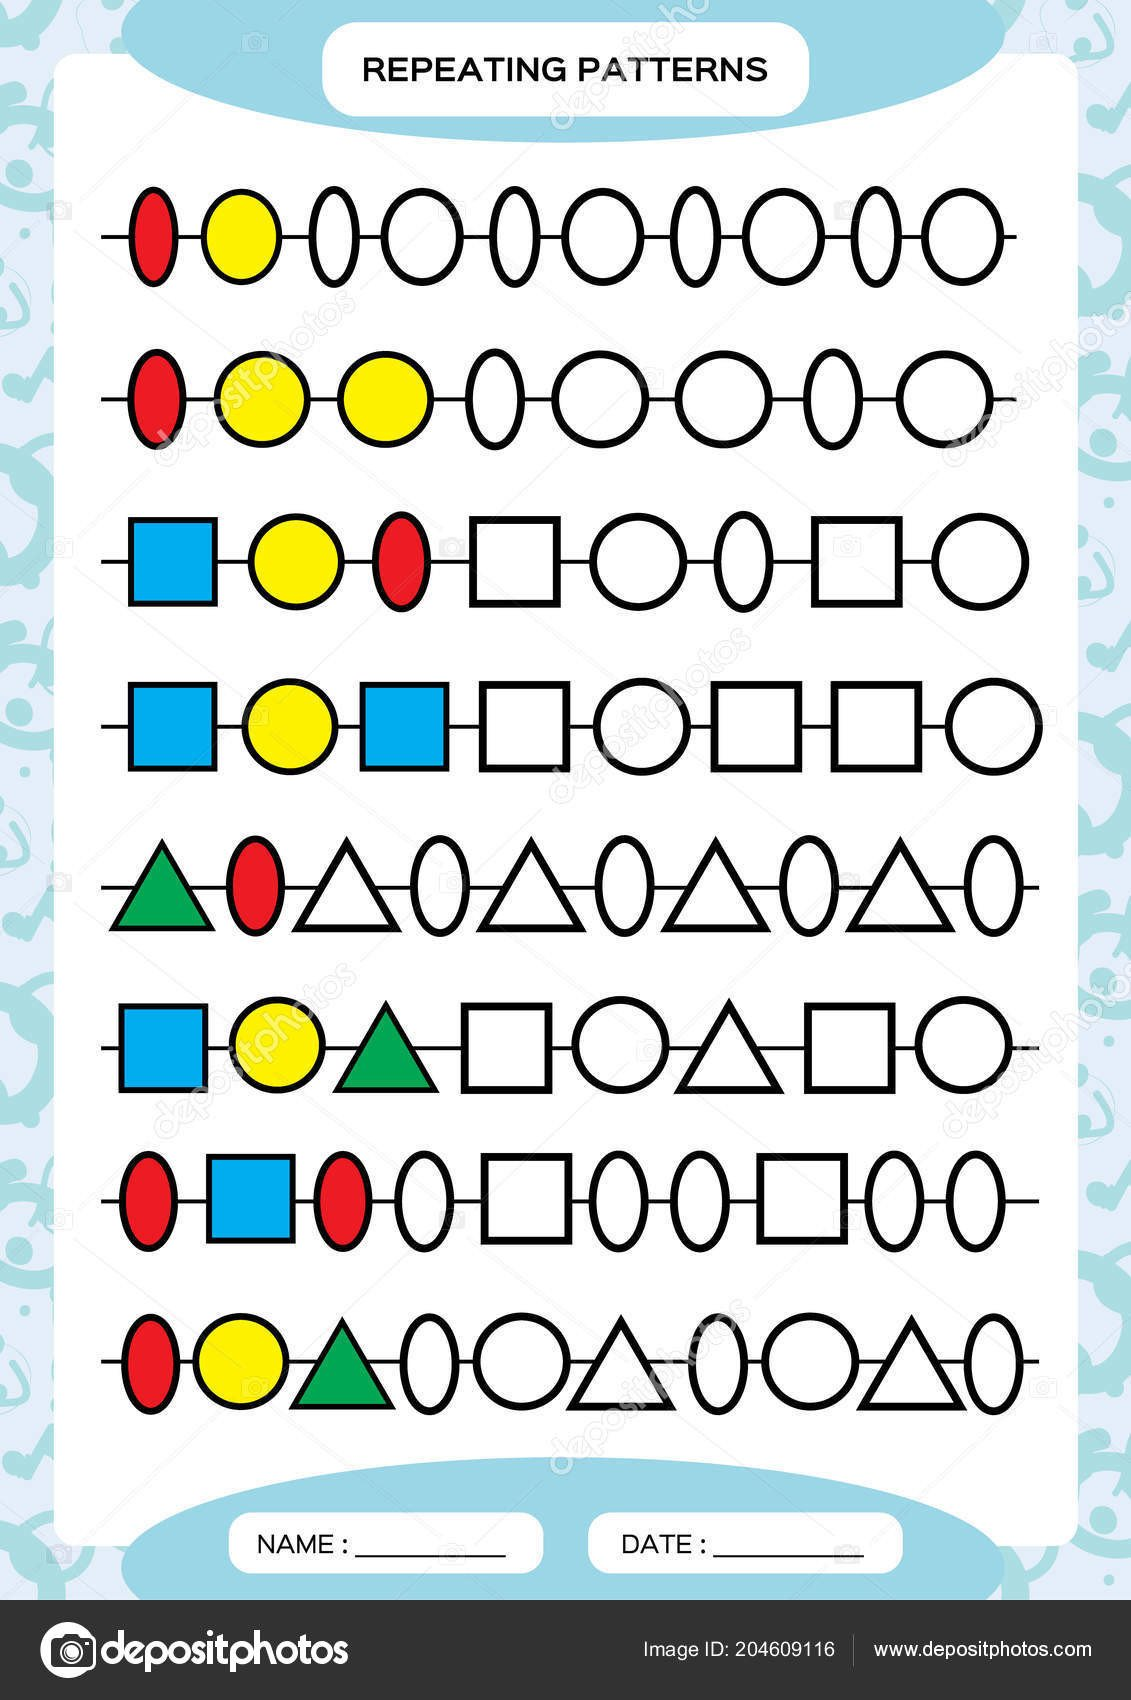 depositphotos stock illustration plete repeating patterns worksheet preschool